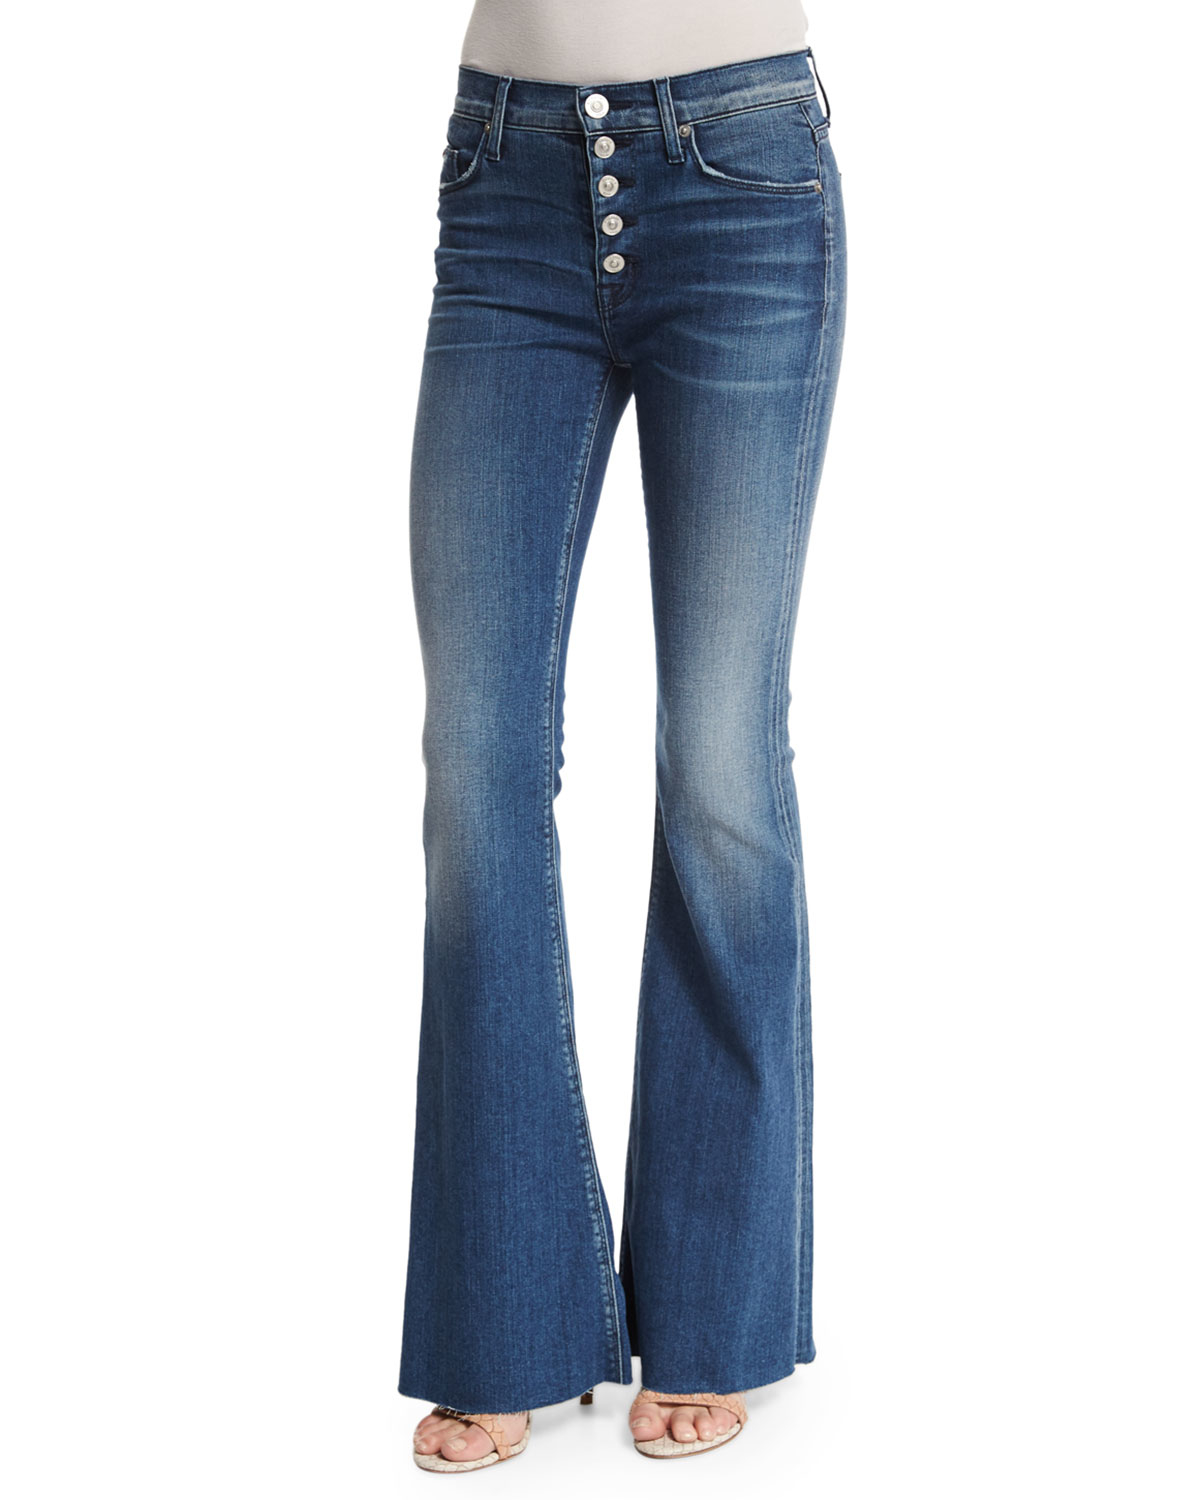 Shop for button fly jeans pants online at Target. Free shipping on purchases over $35 and save 5% every day with your Target REDcard.